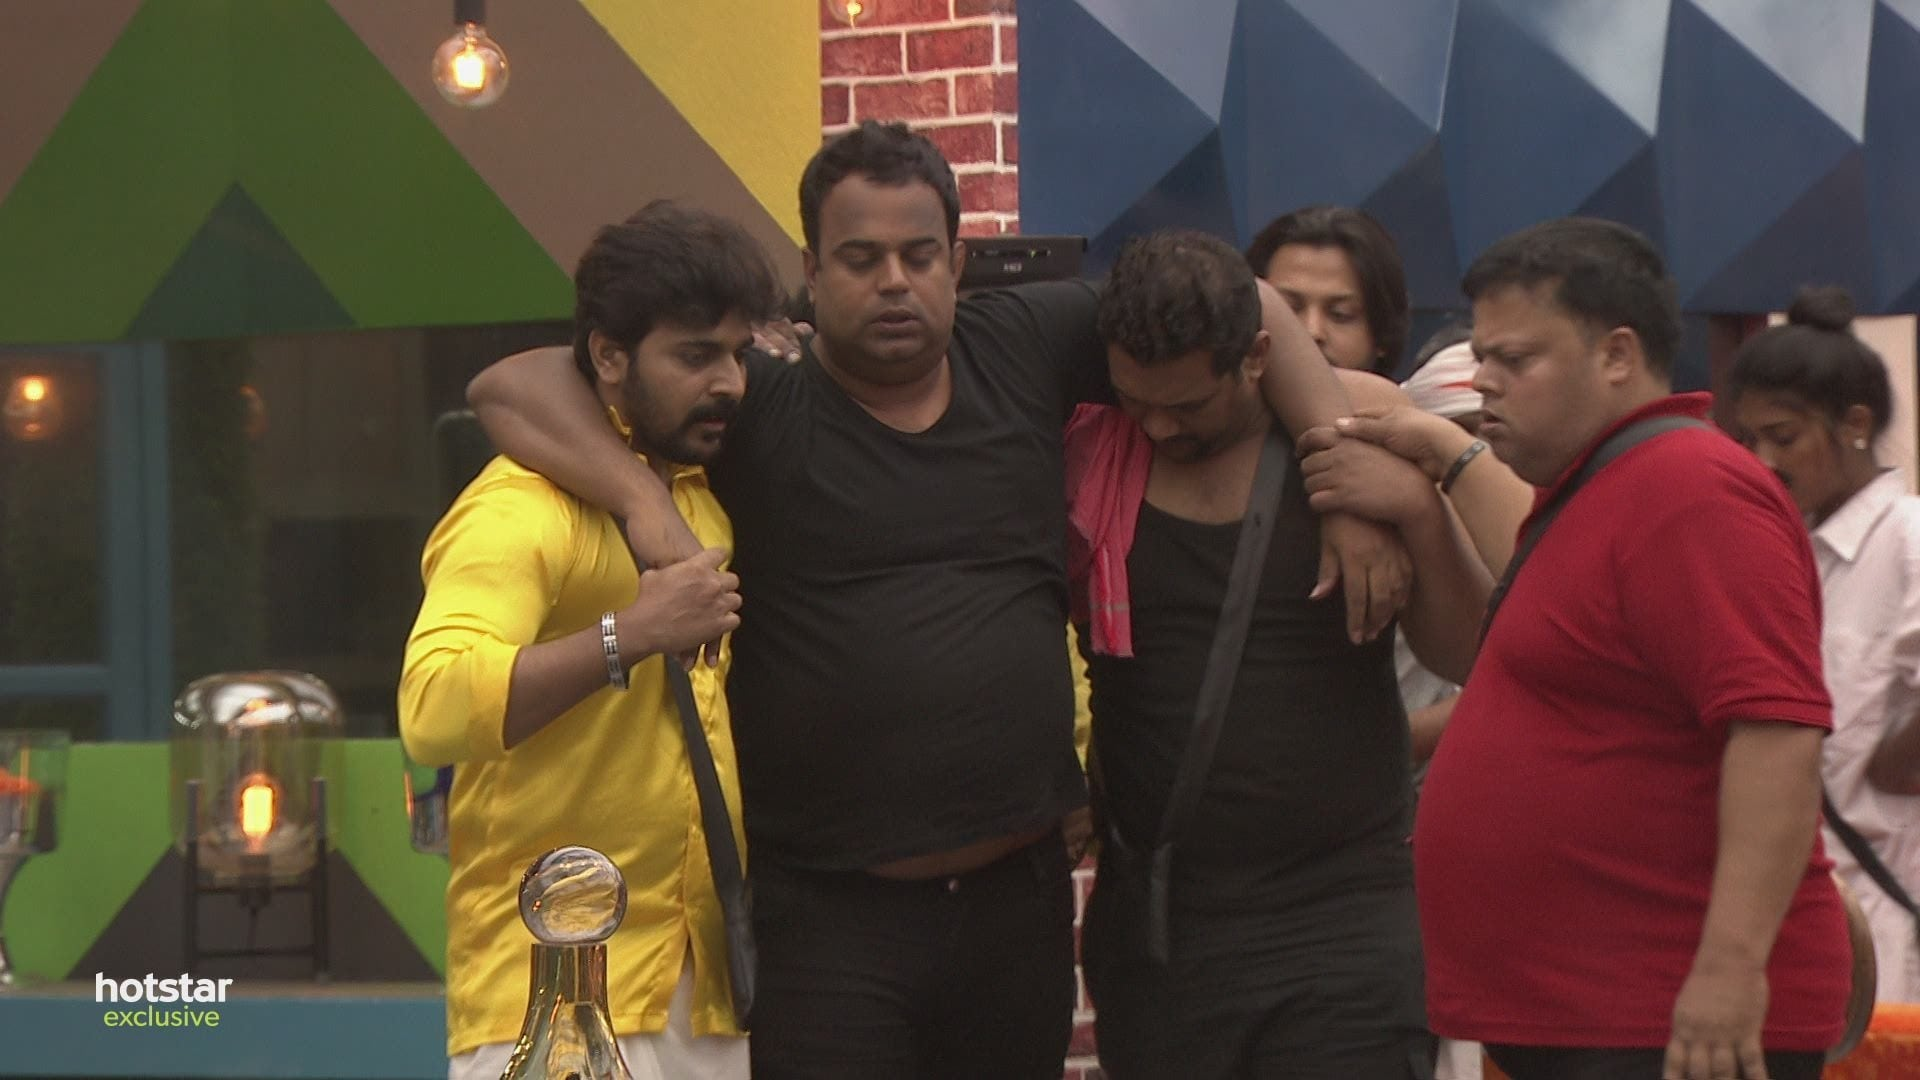 Bigg Boss - Season 1 Episode 4 : Day 3: Manoj collapses